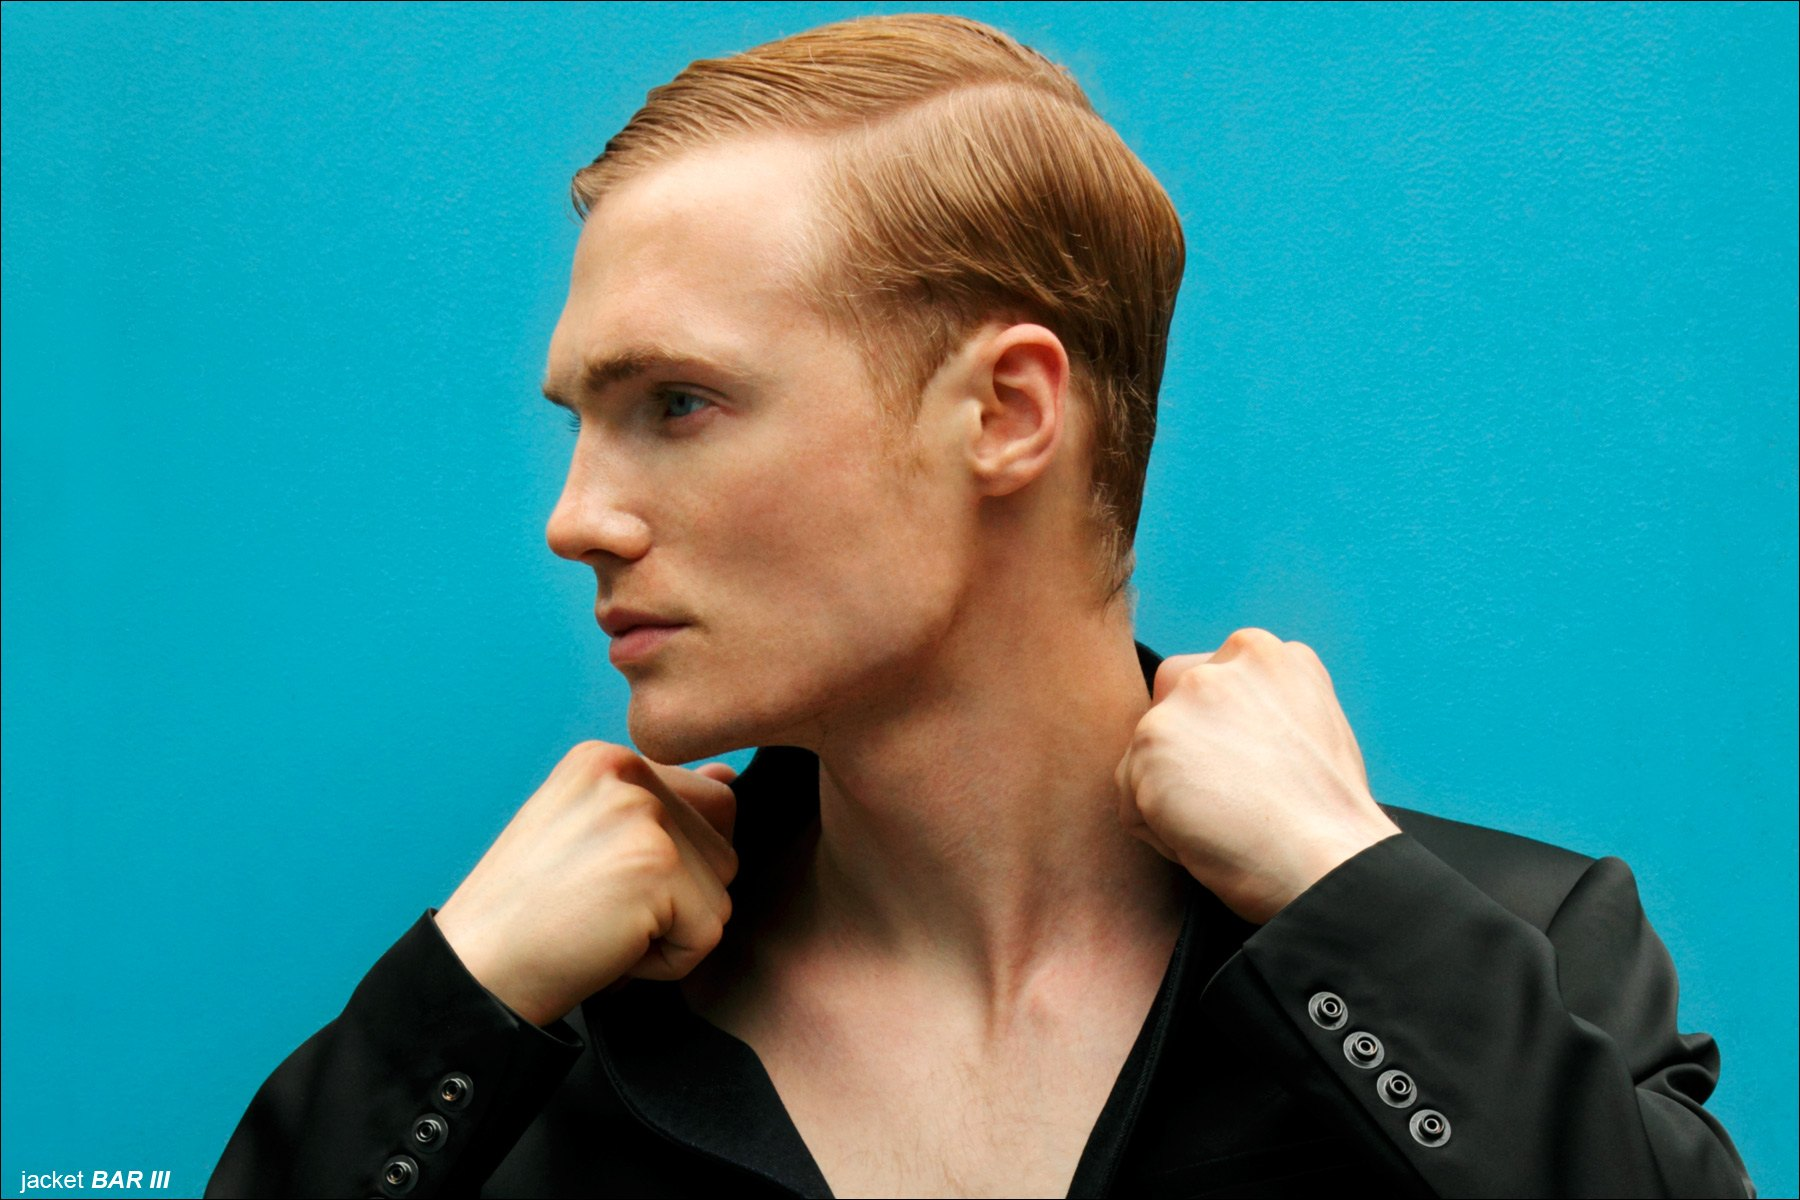 Model Justin Taylor, from Adam Models NY, photographed for Ponyboy Magazine menswear editorial